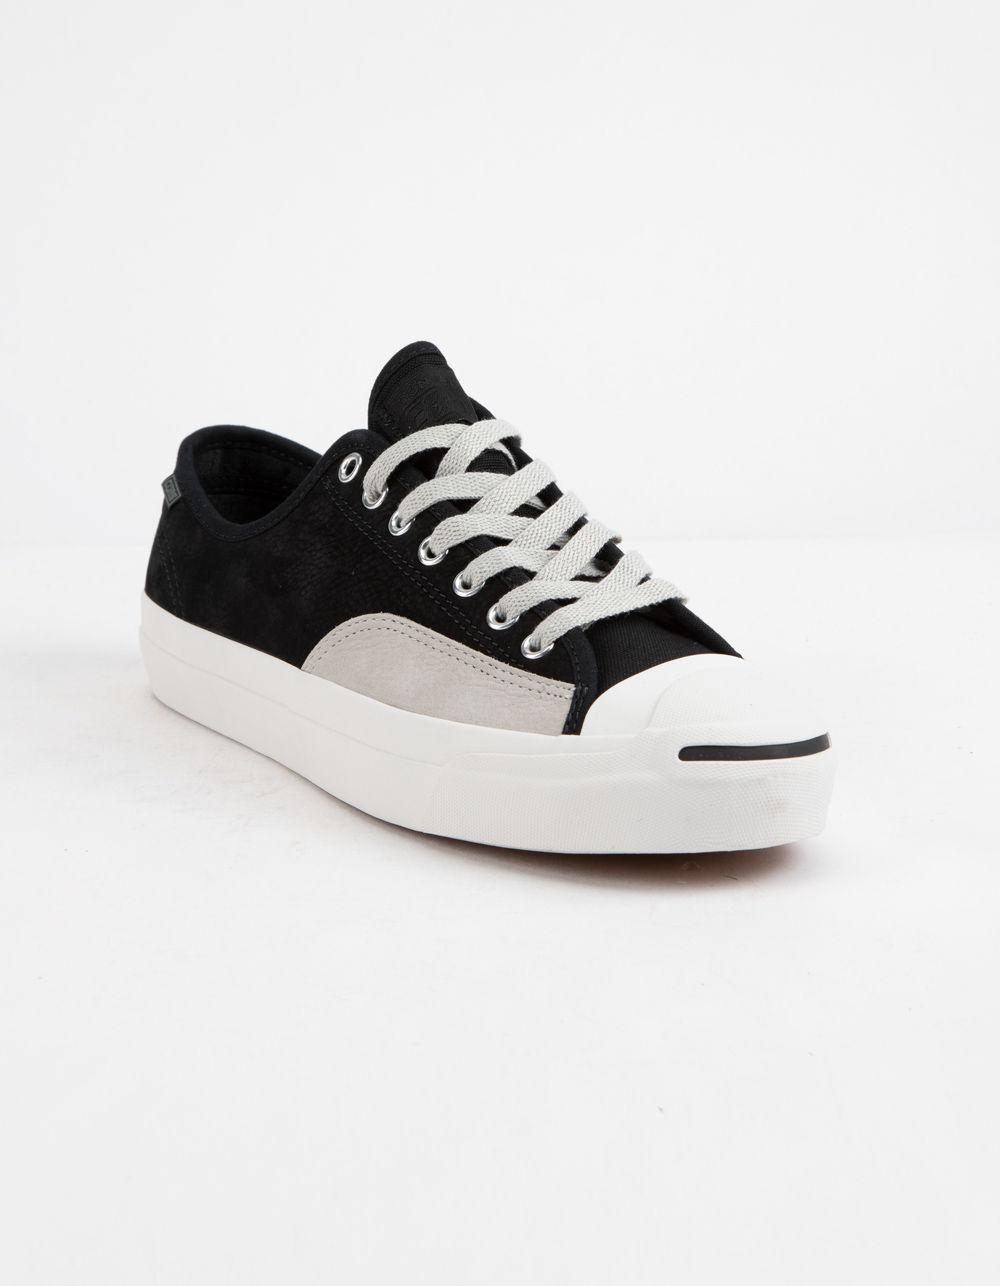 2aa711327a84ef Lyst - Converse Jack Purcell Pro Leather Low Top Shoes in Black